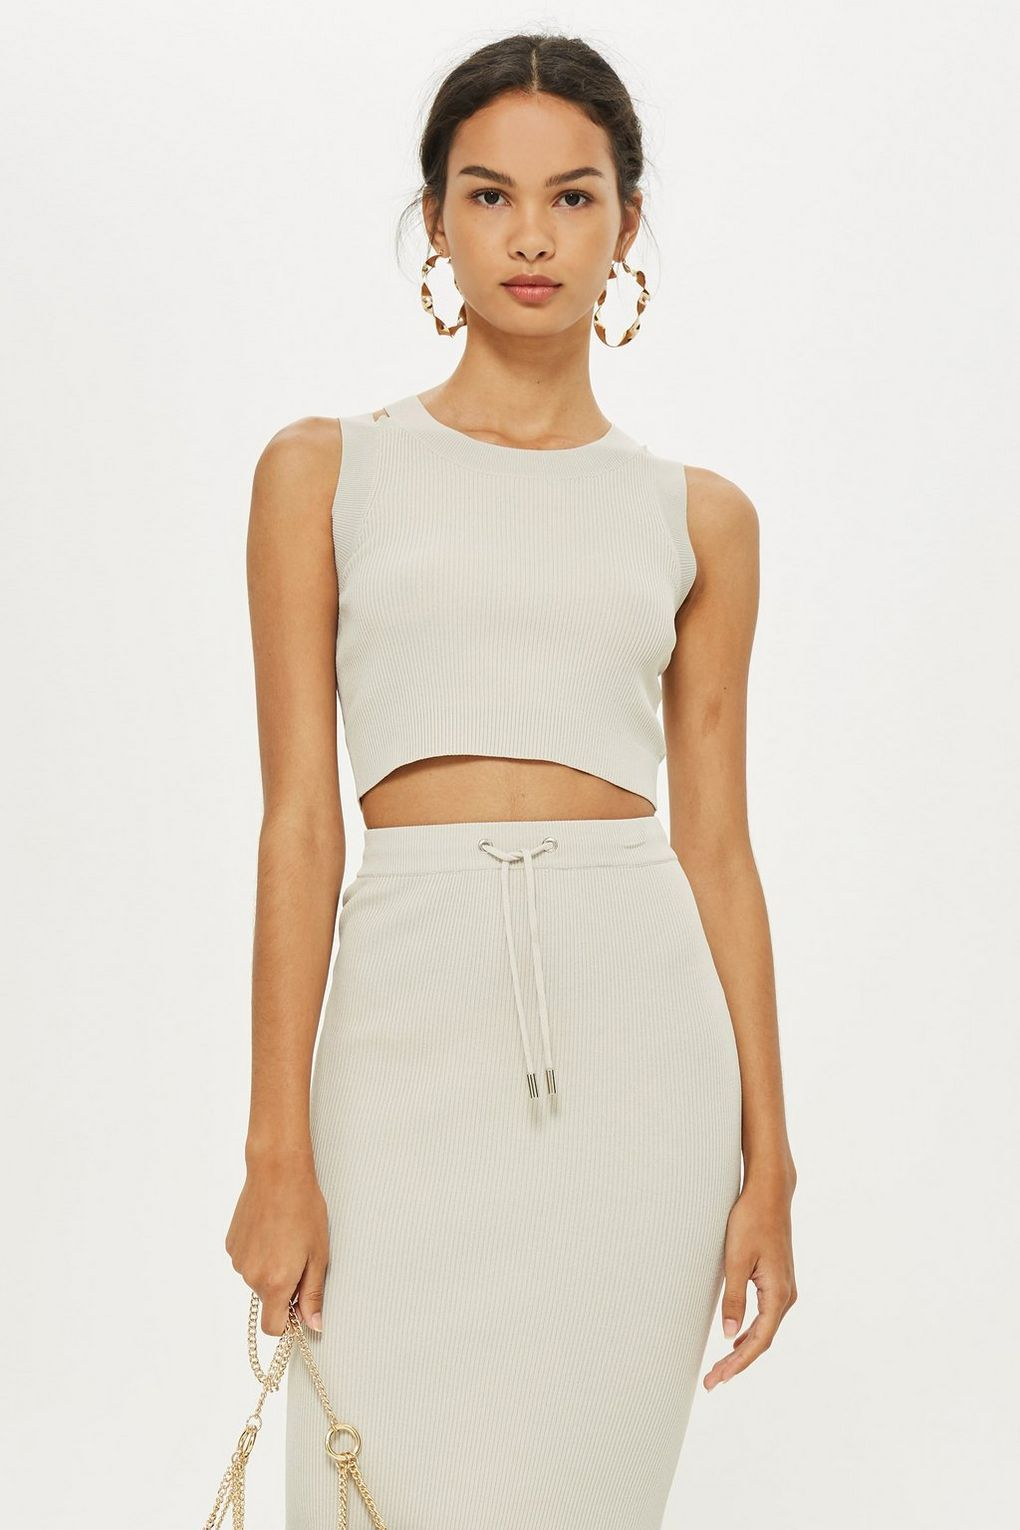 e128b73603 Loving this minimal look knit crop top with matching skirt!  affiliate   croptop  capsulewardrobe  fashion